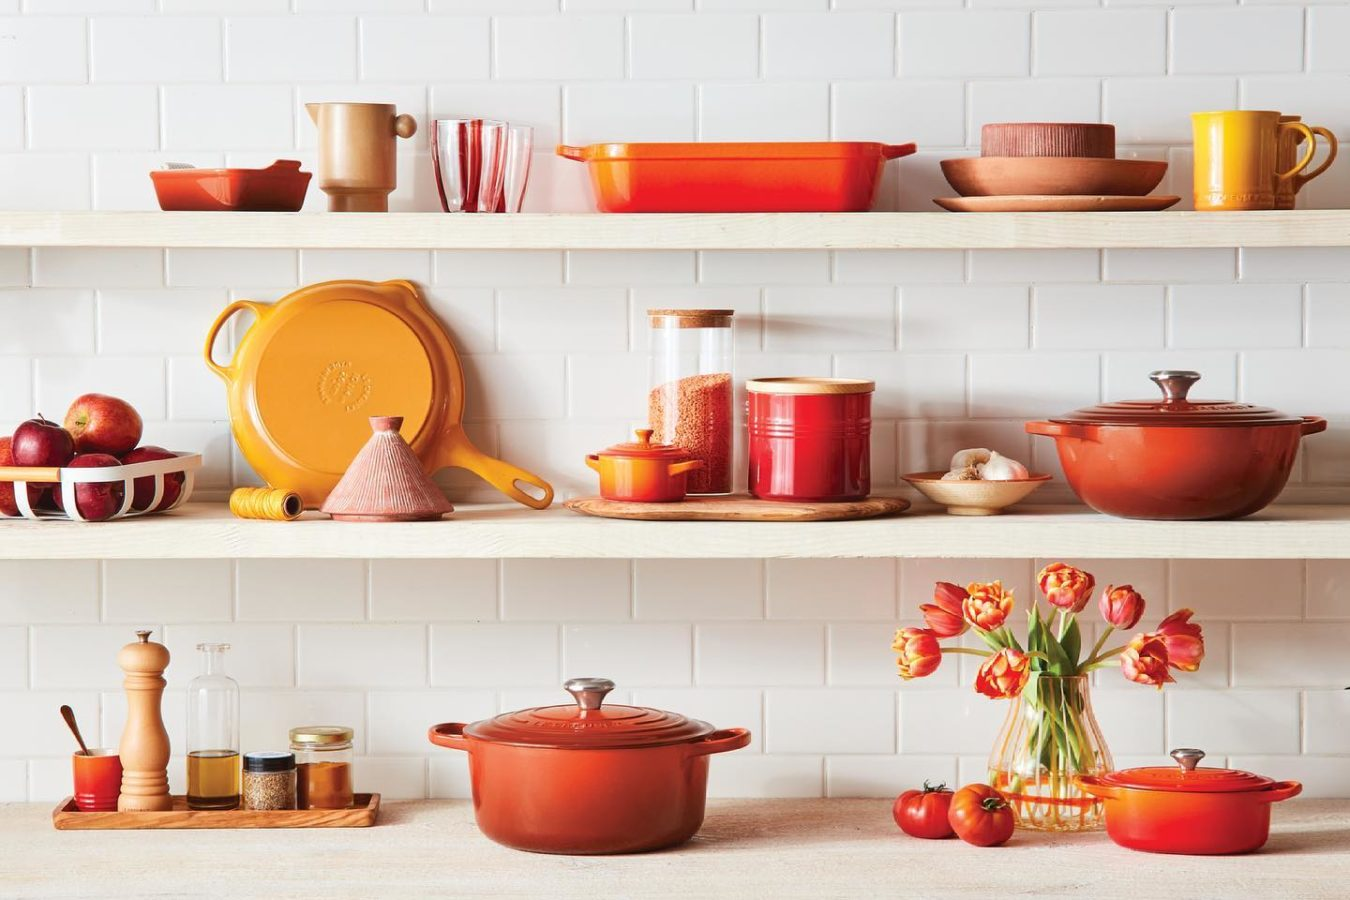 5 beautiful kitchen items for a super Instagrammable kitchen